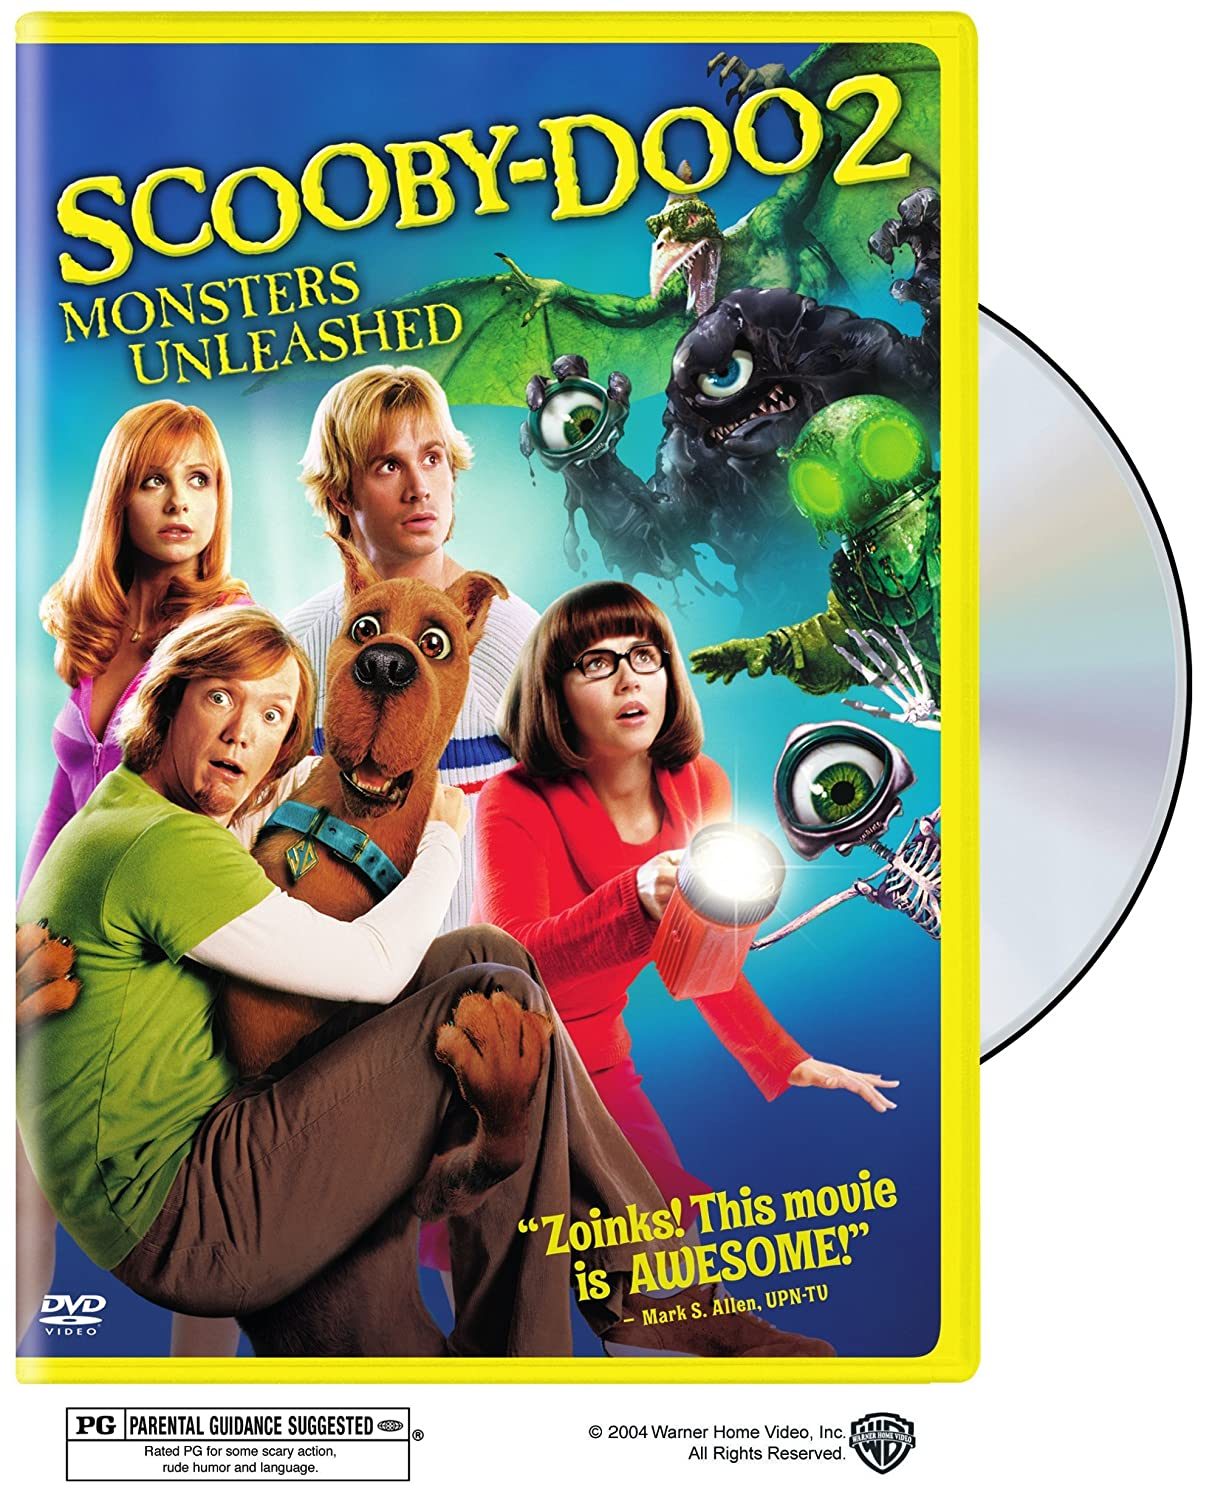 Amazon Com Scooby Doo 2 Monsters Unleashed Widescreen Edition Hanna Barbera Productions Raja Gosnell Charles Roven Brent O Connor Richard Suckle Kelley Smith Wait Joseph Barbera James Gunn Freddie Prinze Jr Sarah Michelle Gellar